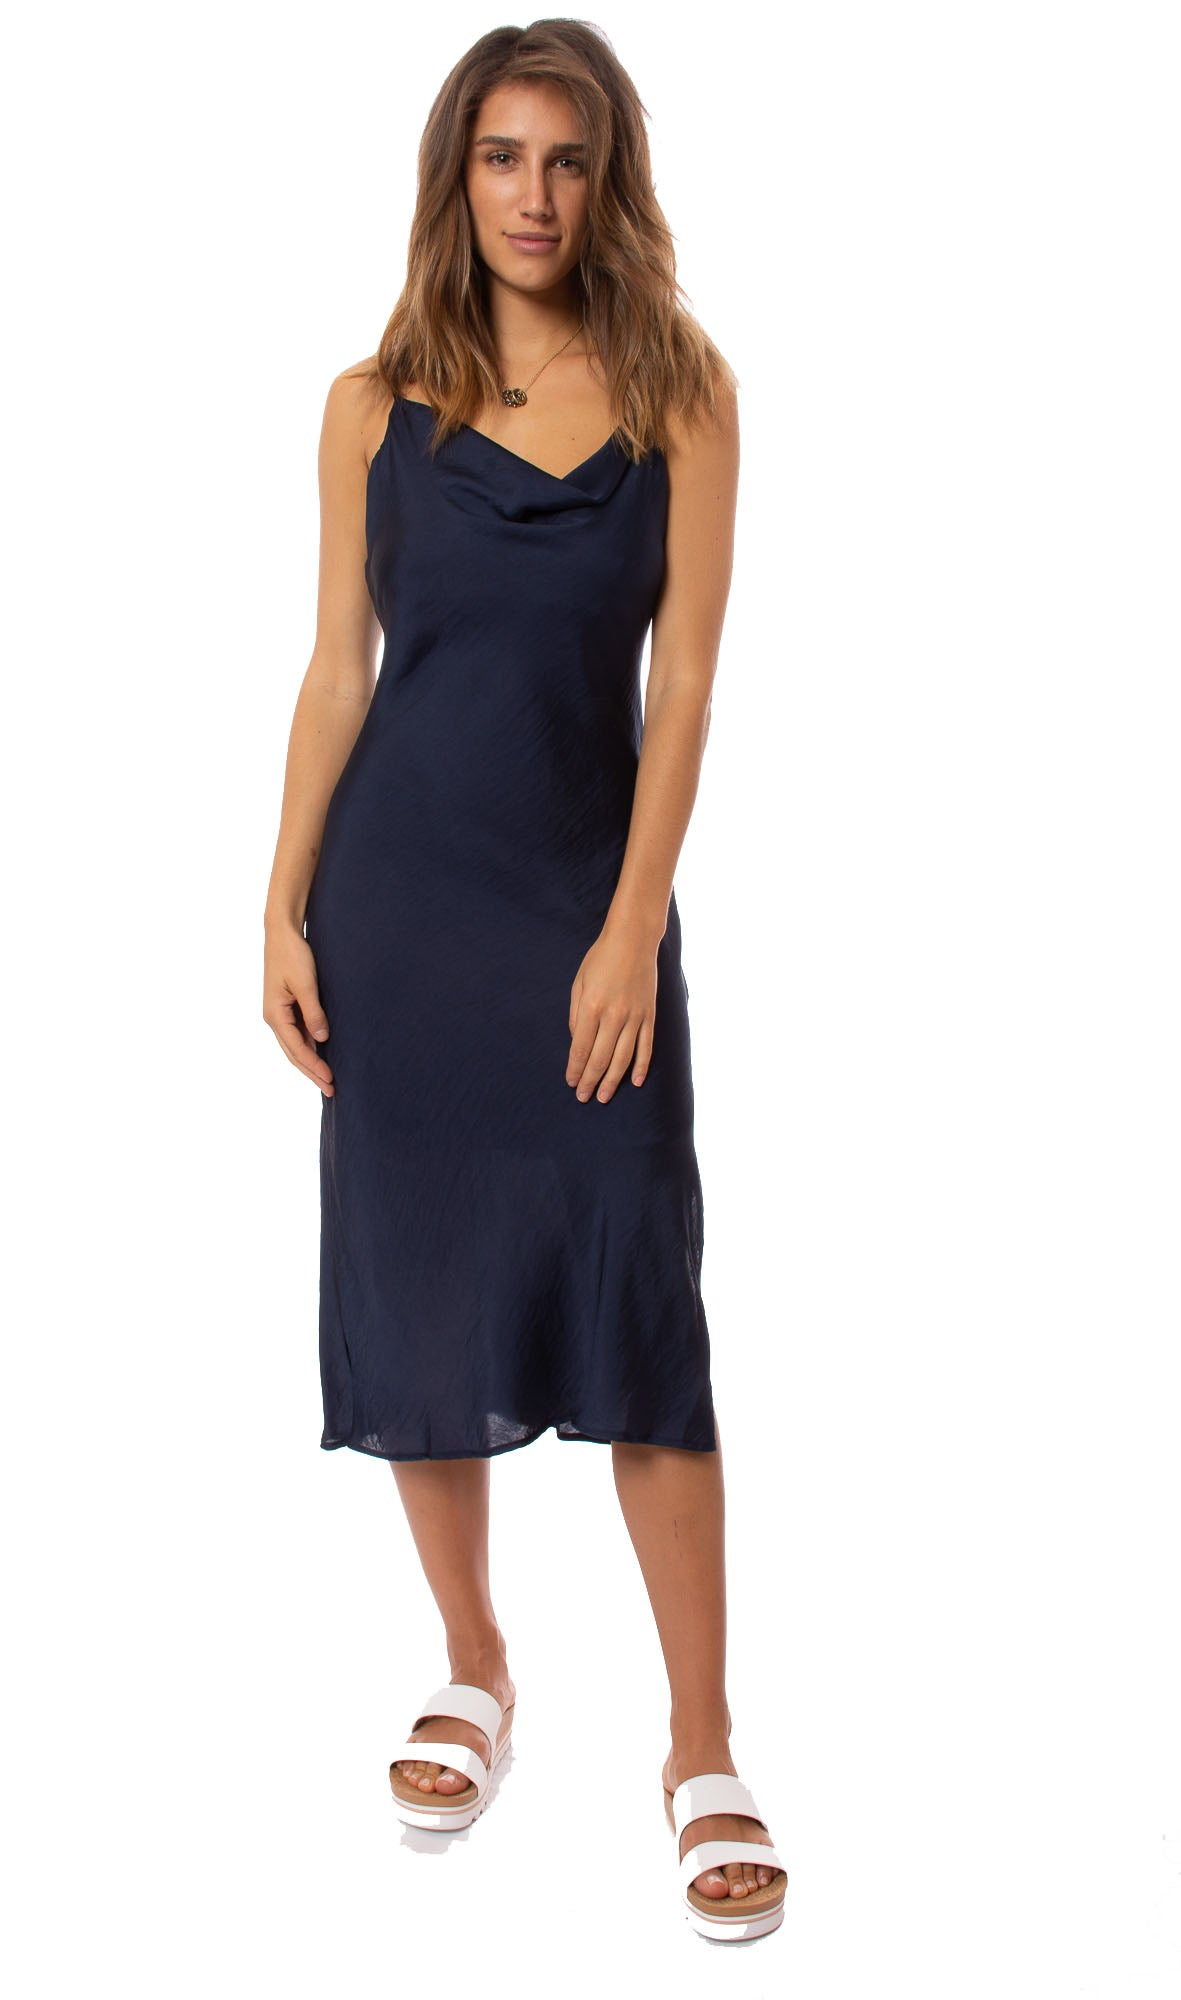 Veronica M. - Bias Midi Dress (DL-990, Navy)